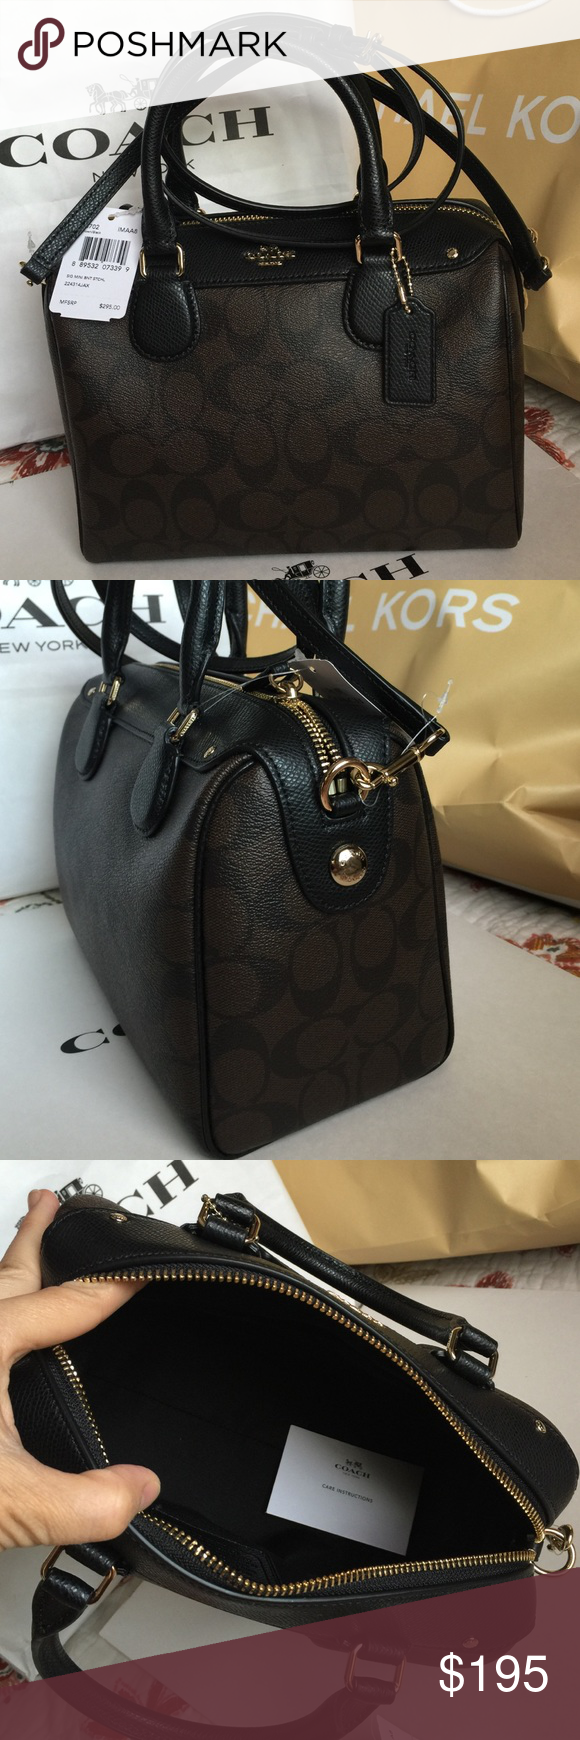 Coach Purse 100% Authentic Coach Purse, brand new with tag!Black/Dark Brown color. Coach Bags Crossbody Bags